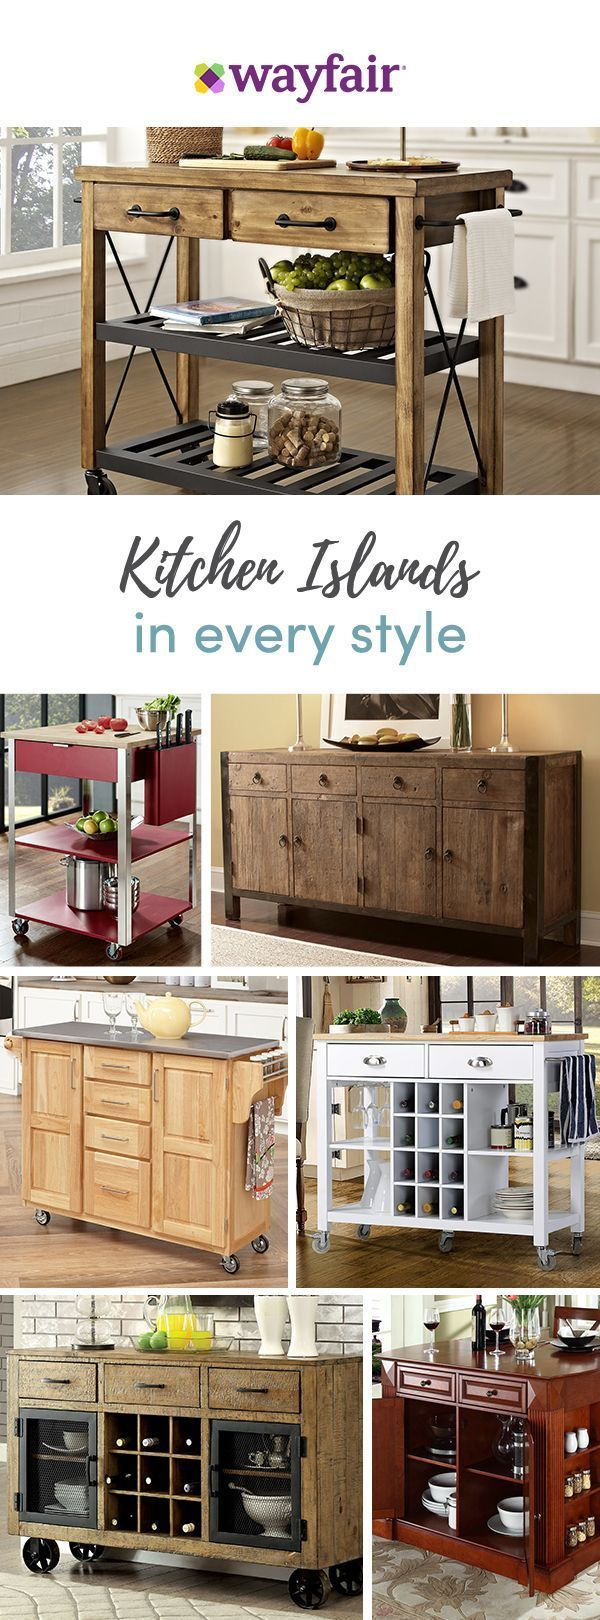 We know that when it comes to the kitchen space is a key factor